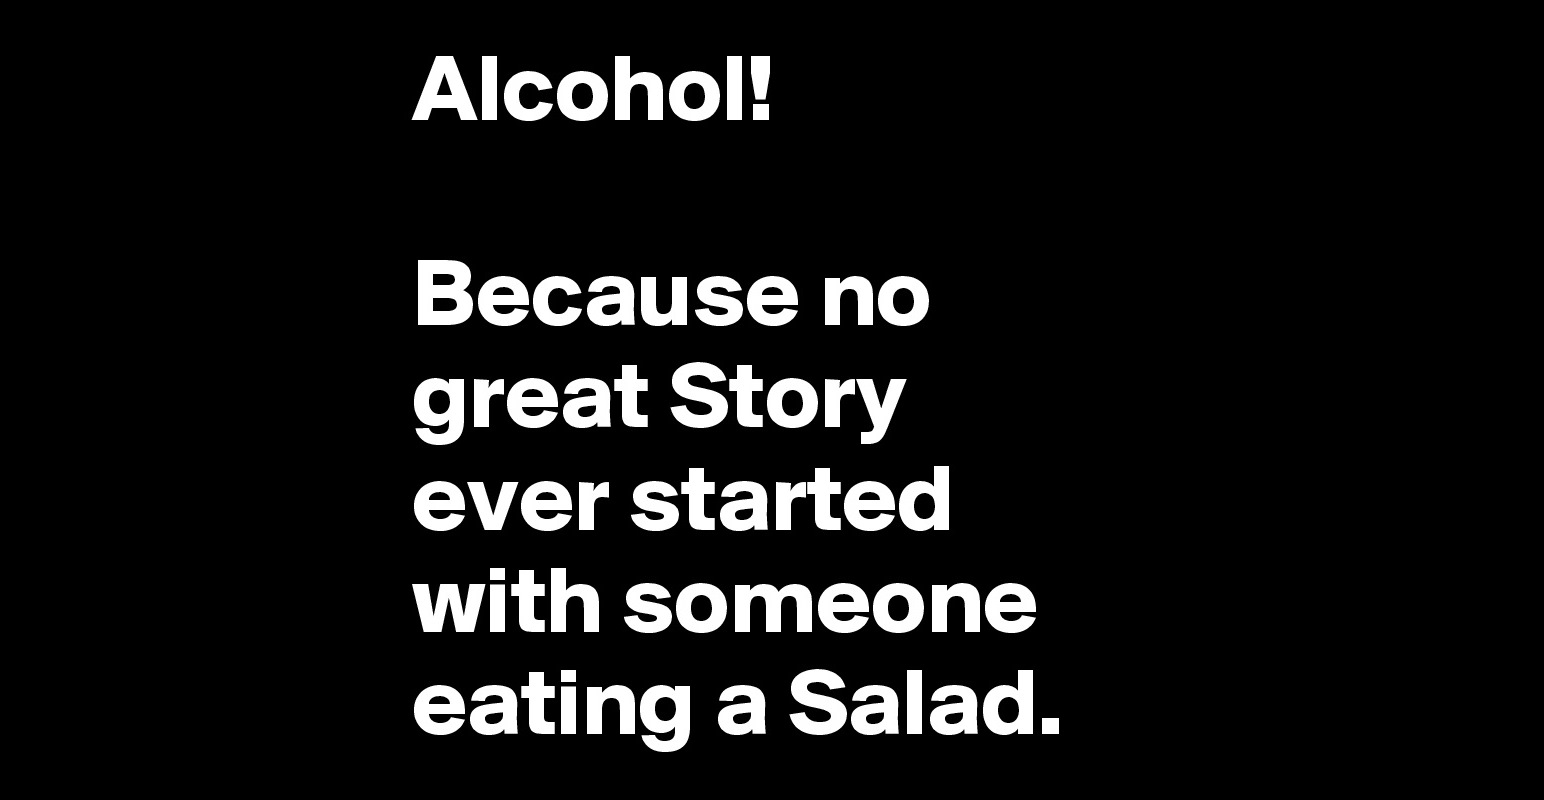 alcohol-because-no-great-story-ever-started-with-s